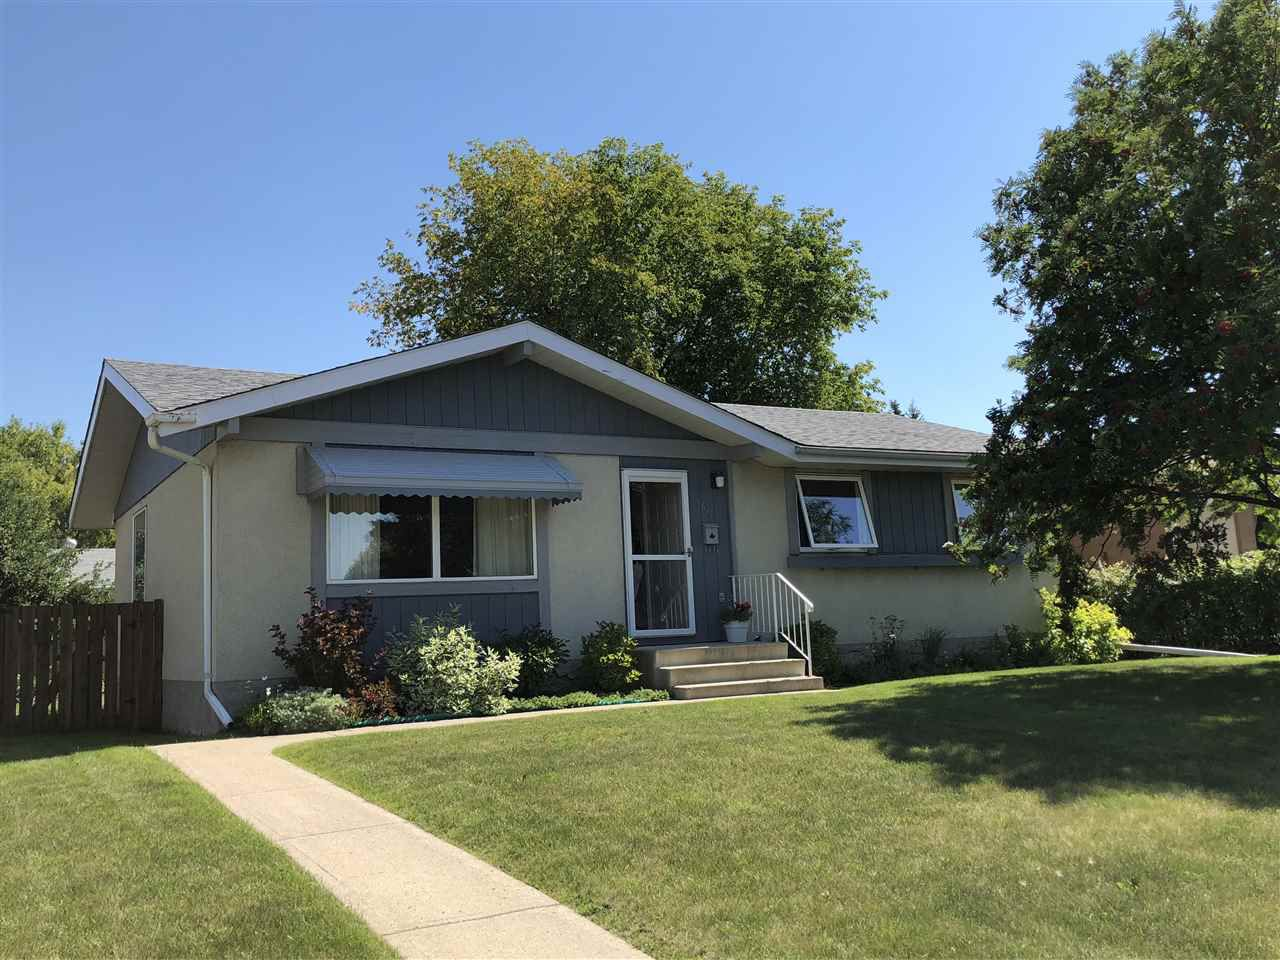 Main Photo: 5617 55A Street: Wetaskiwin House for sale : MLS®# E4124512